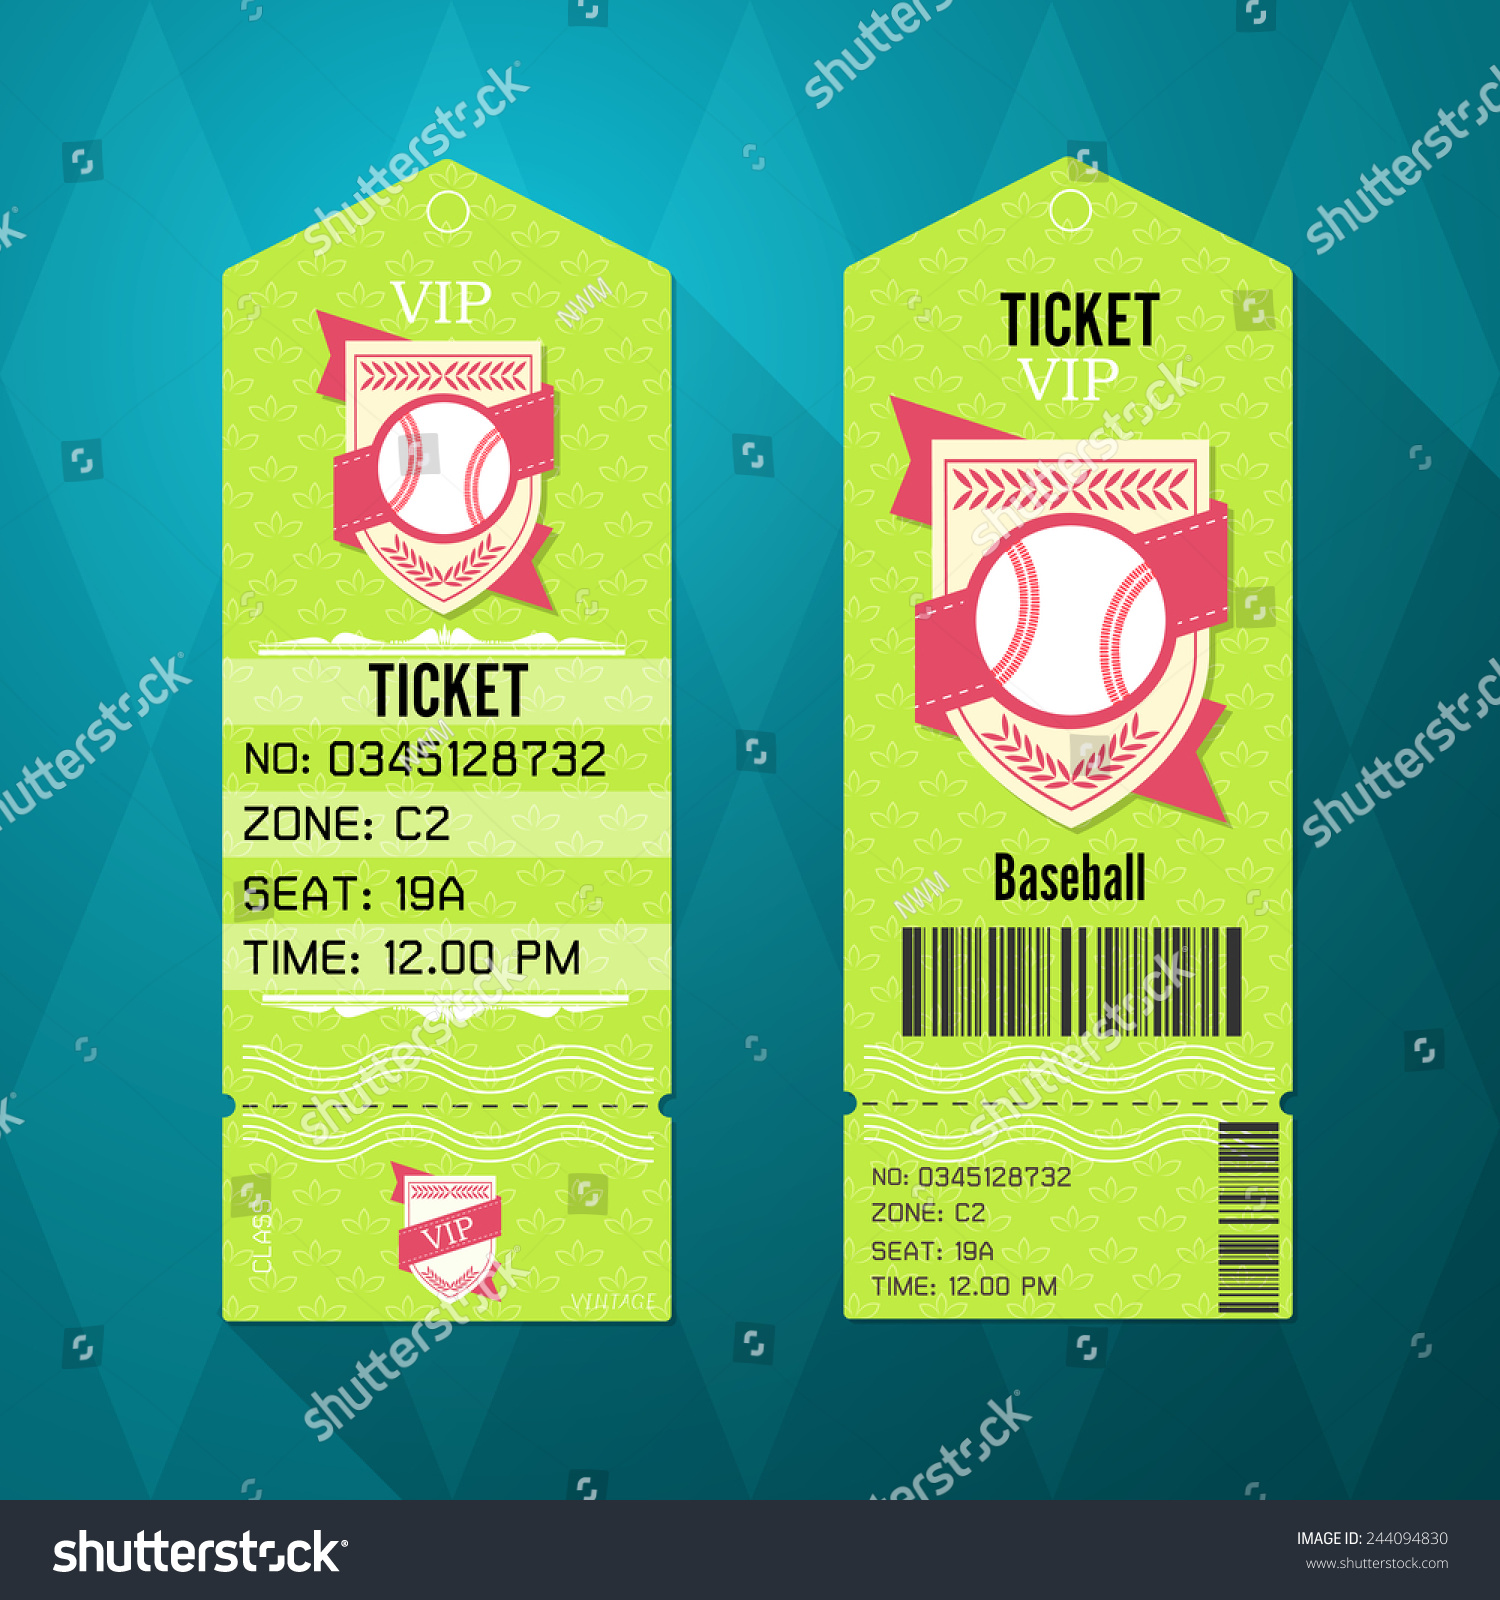 baseball ticket design template retro style stock vector 244094830 shutterstock. Black Bedroom Furniture Sets. Home Design Ideas